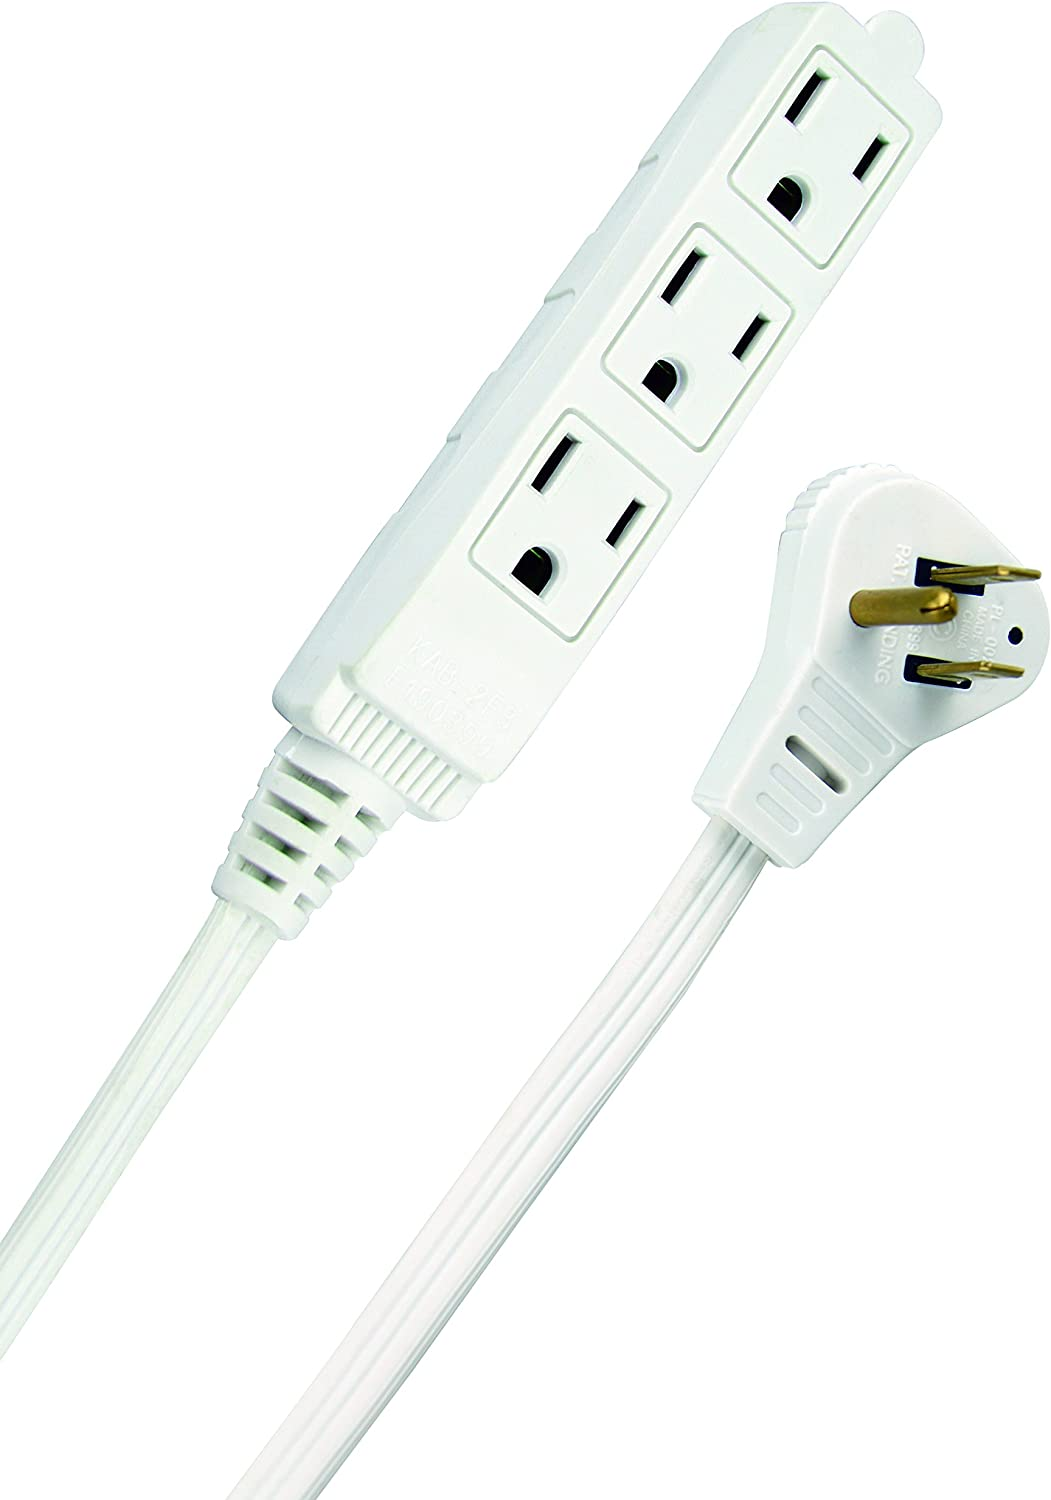 SlimLine 2232 Angled Flat Plug Extension Cord, Space Saving Flat Design, 3 Grounded Outlets, 13-Foot, 13 Amps, 1625 Watts, 125 Volts, UL Listed, I deal For Powering House Hold Appliances, Lamps and Clocks, Neutral White Color - -